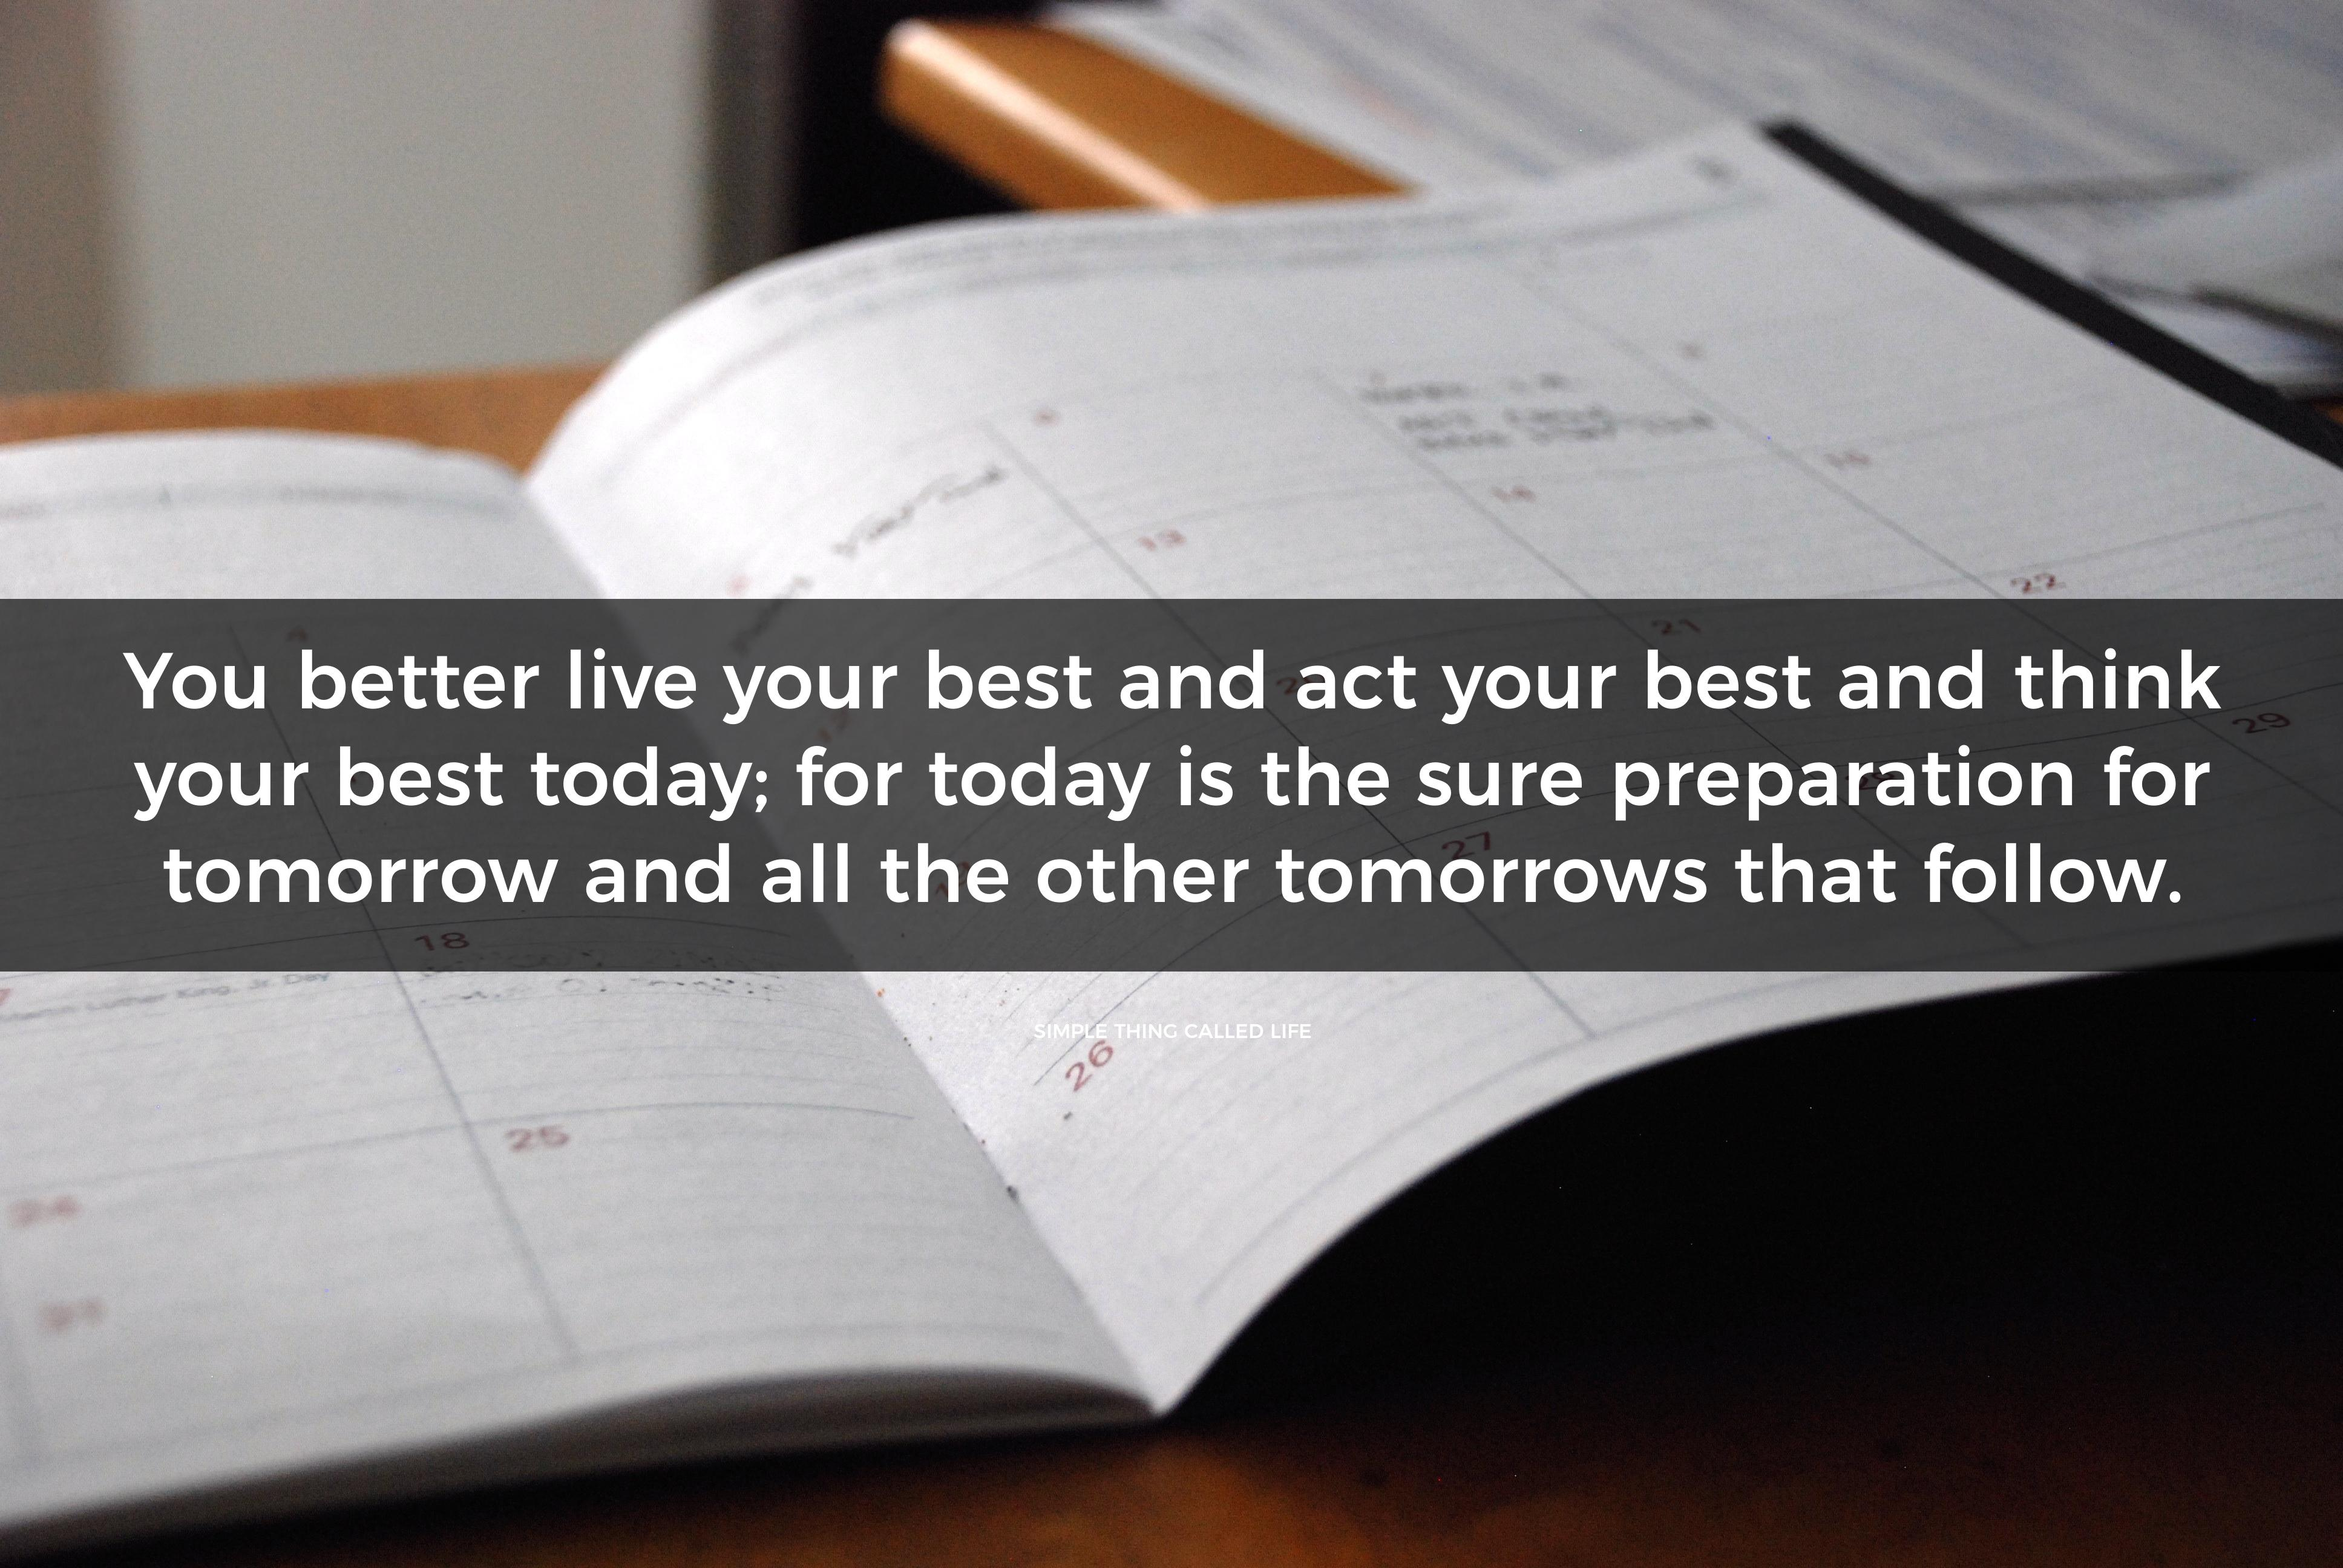 You better live your best and act your best and think your best today; for today is the sure preparation for tomorrow and all the other tomorrows that follow.